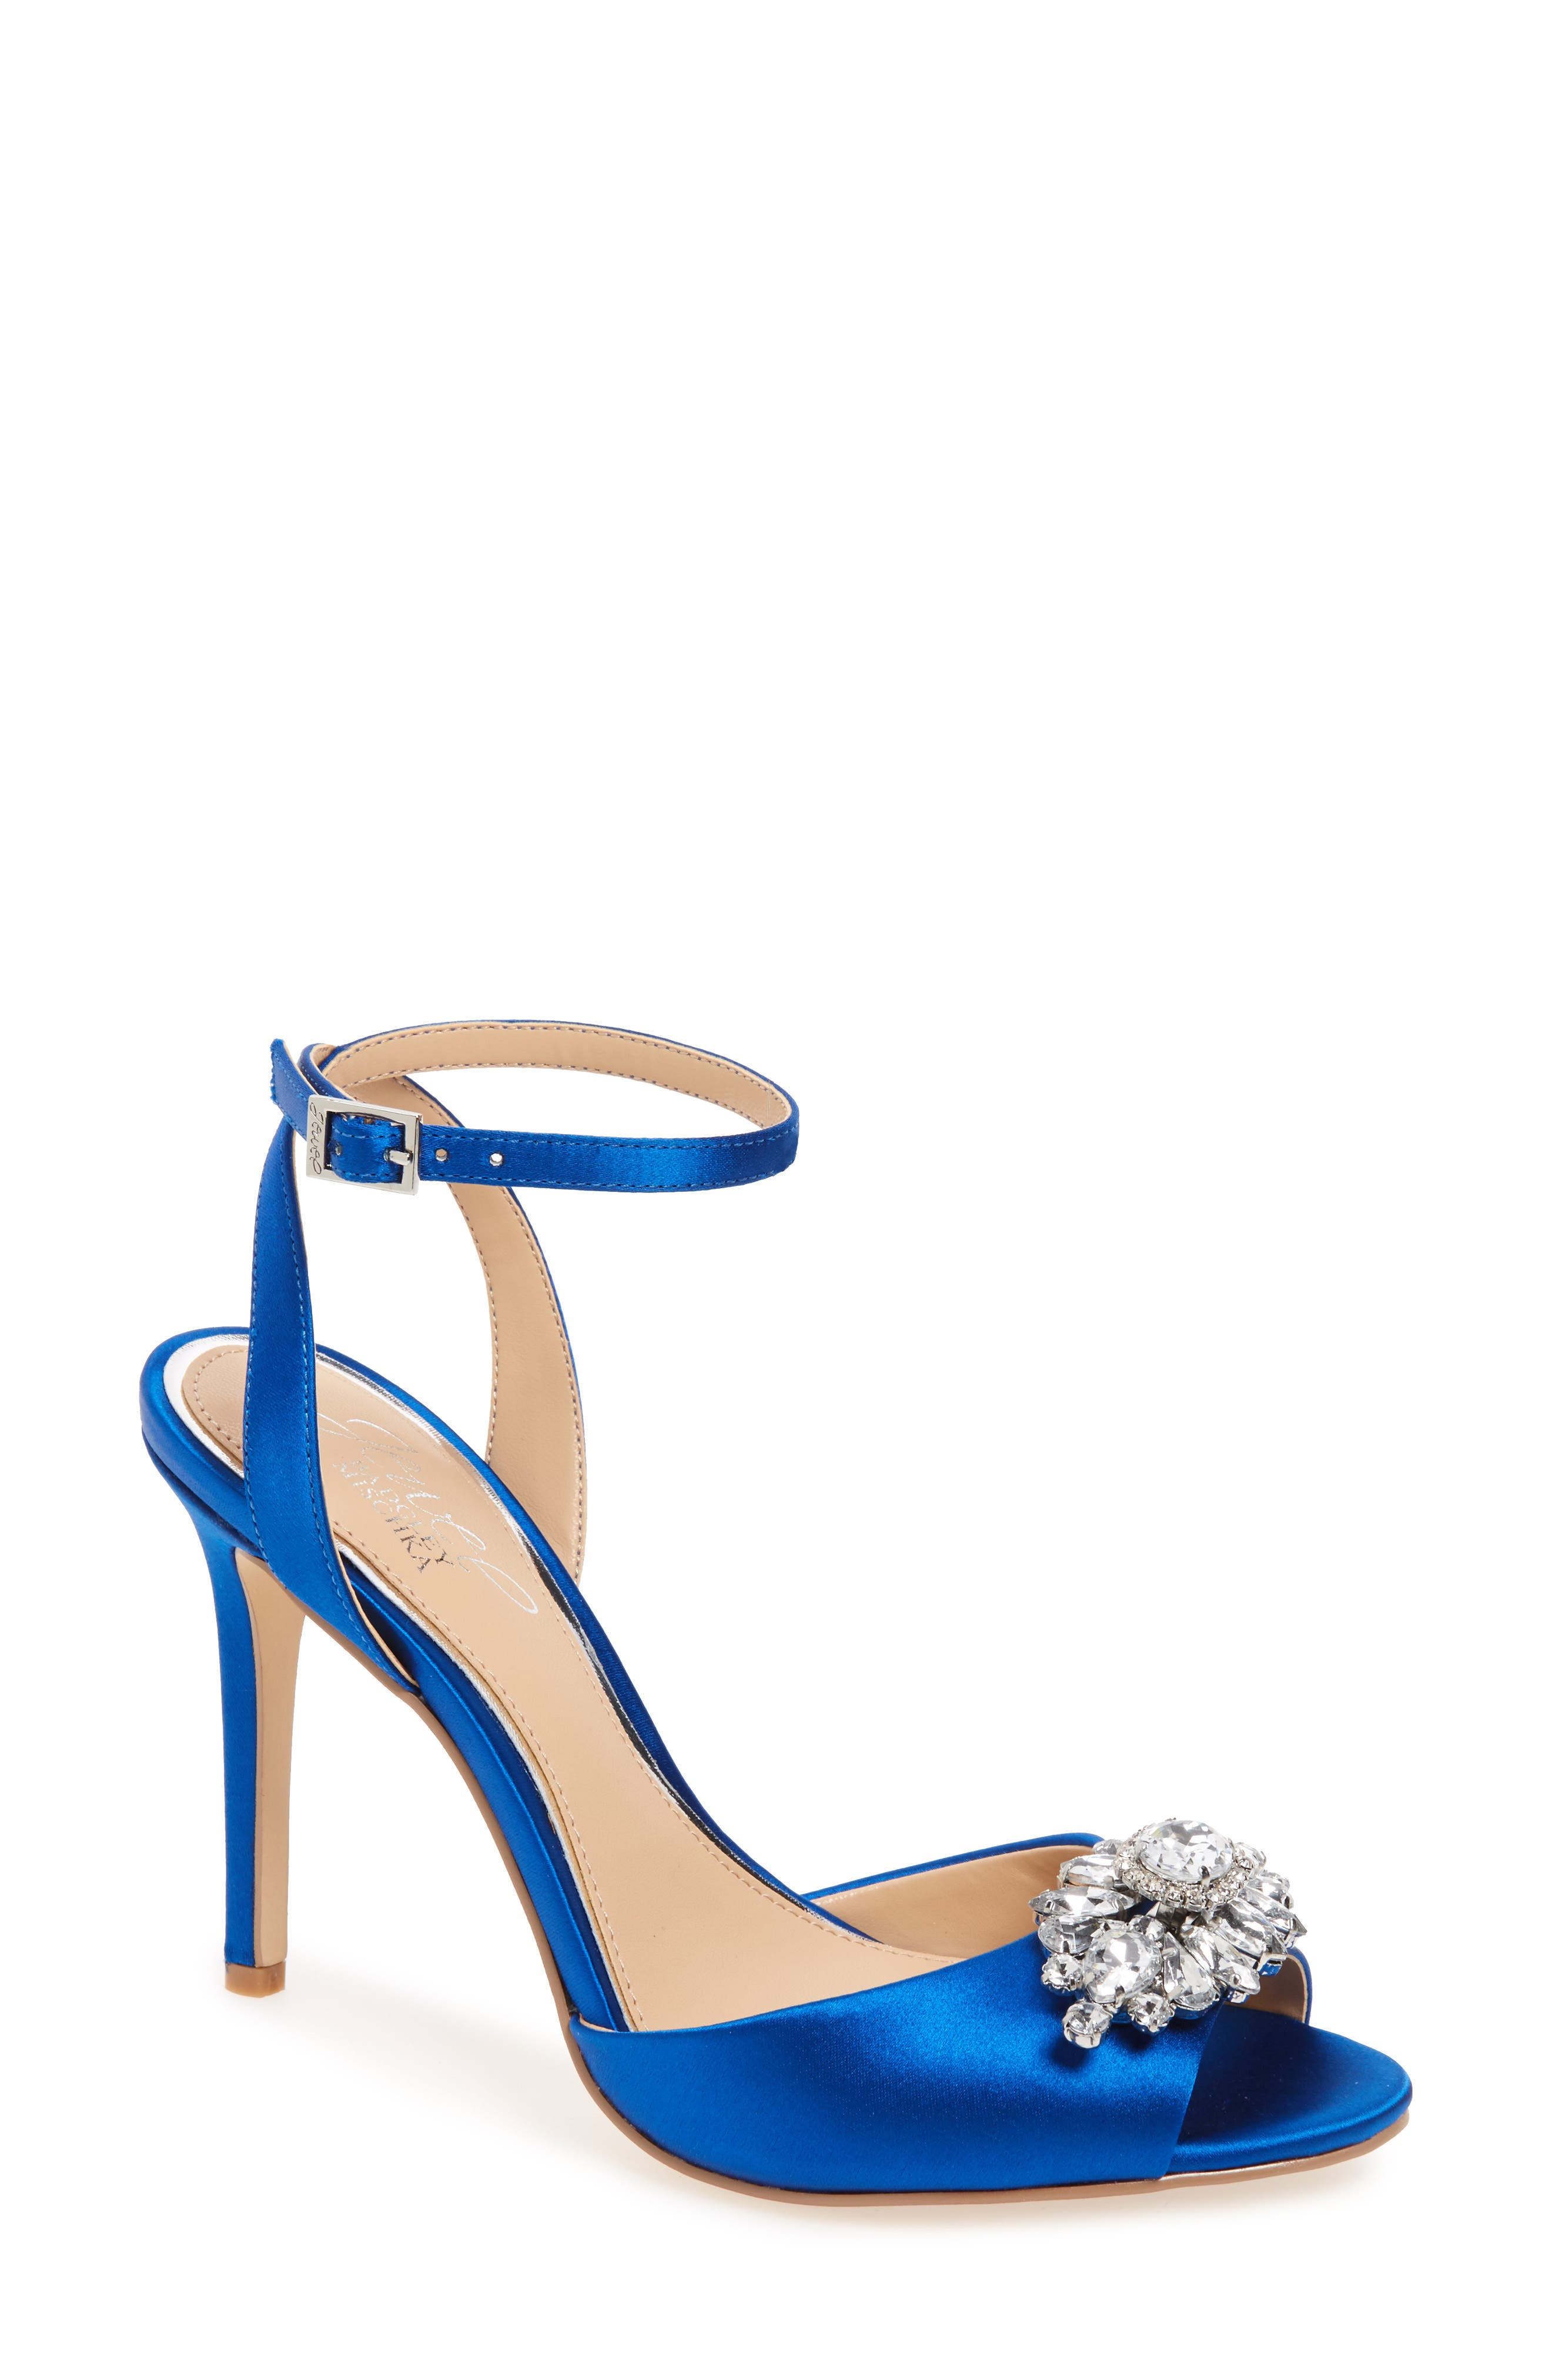 JEWEL BADGLEY MISCHKA Hayden Embellished Ankle Strap Sandal